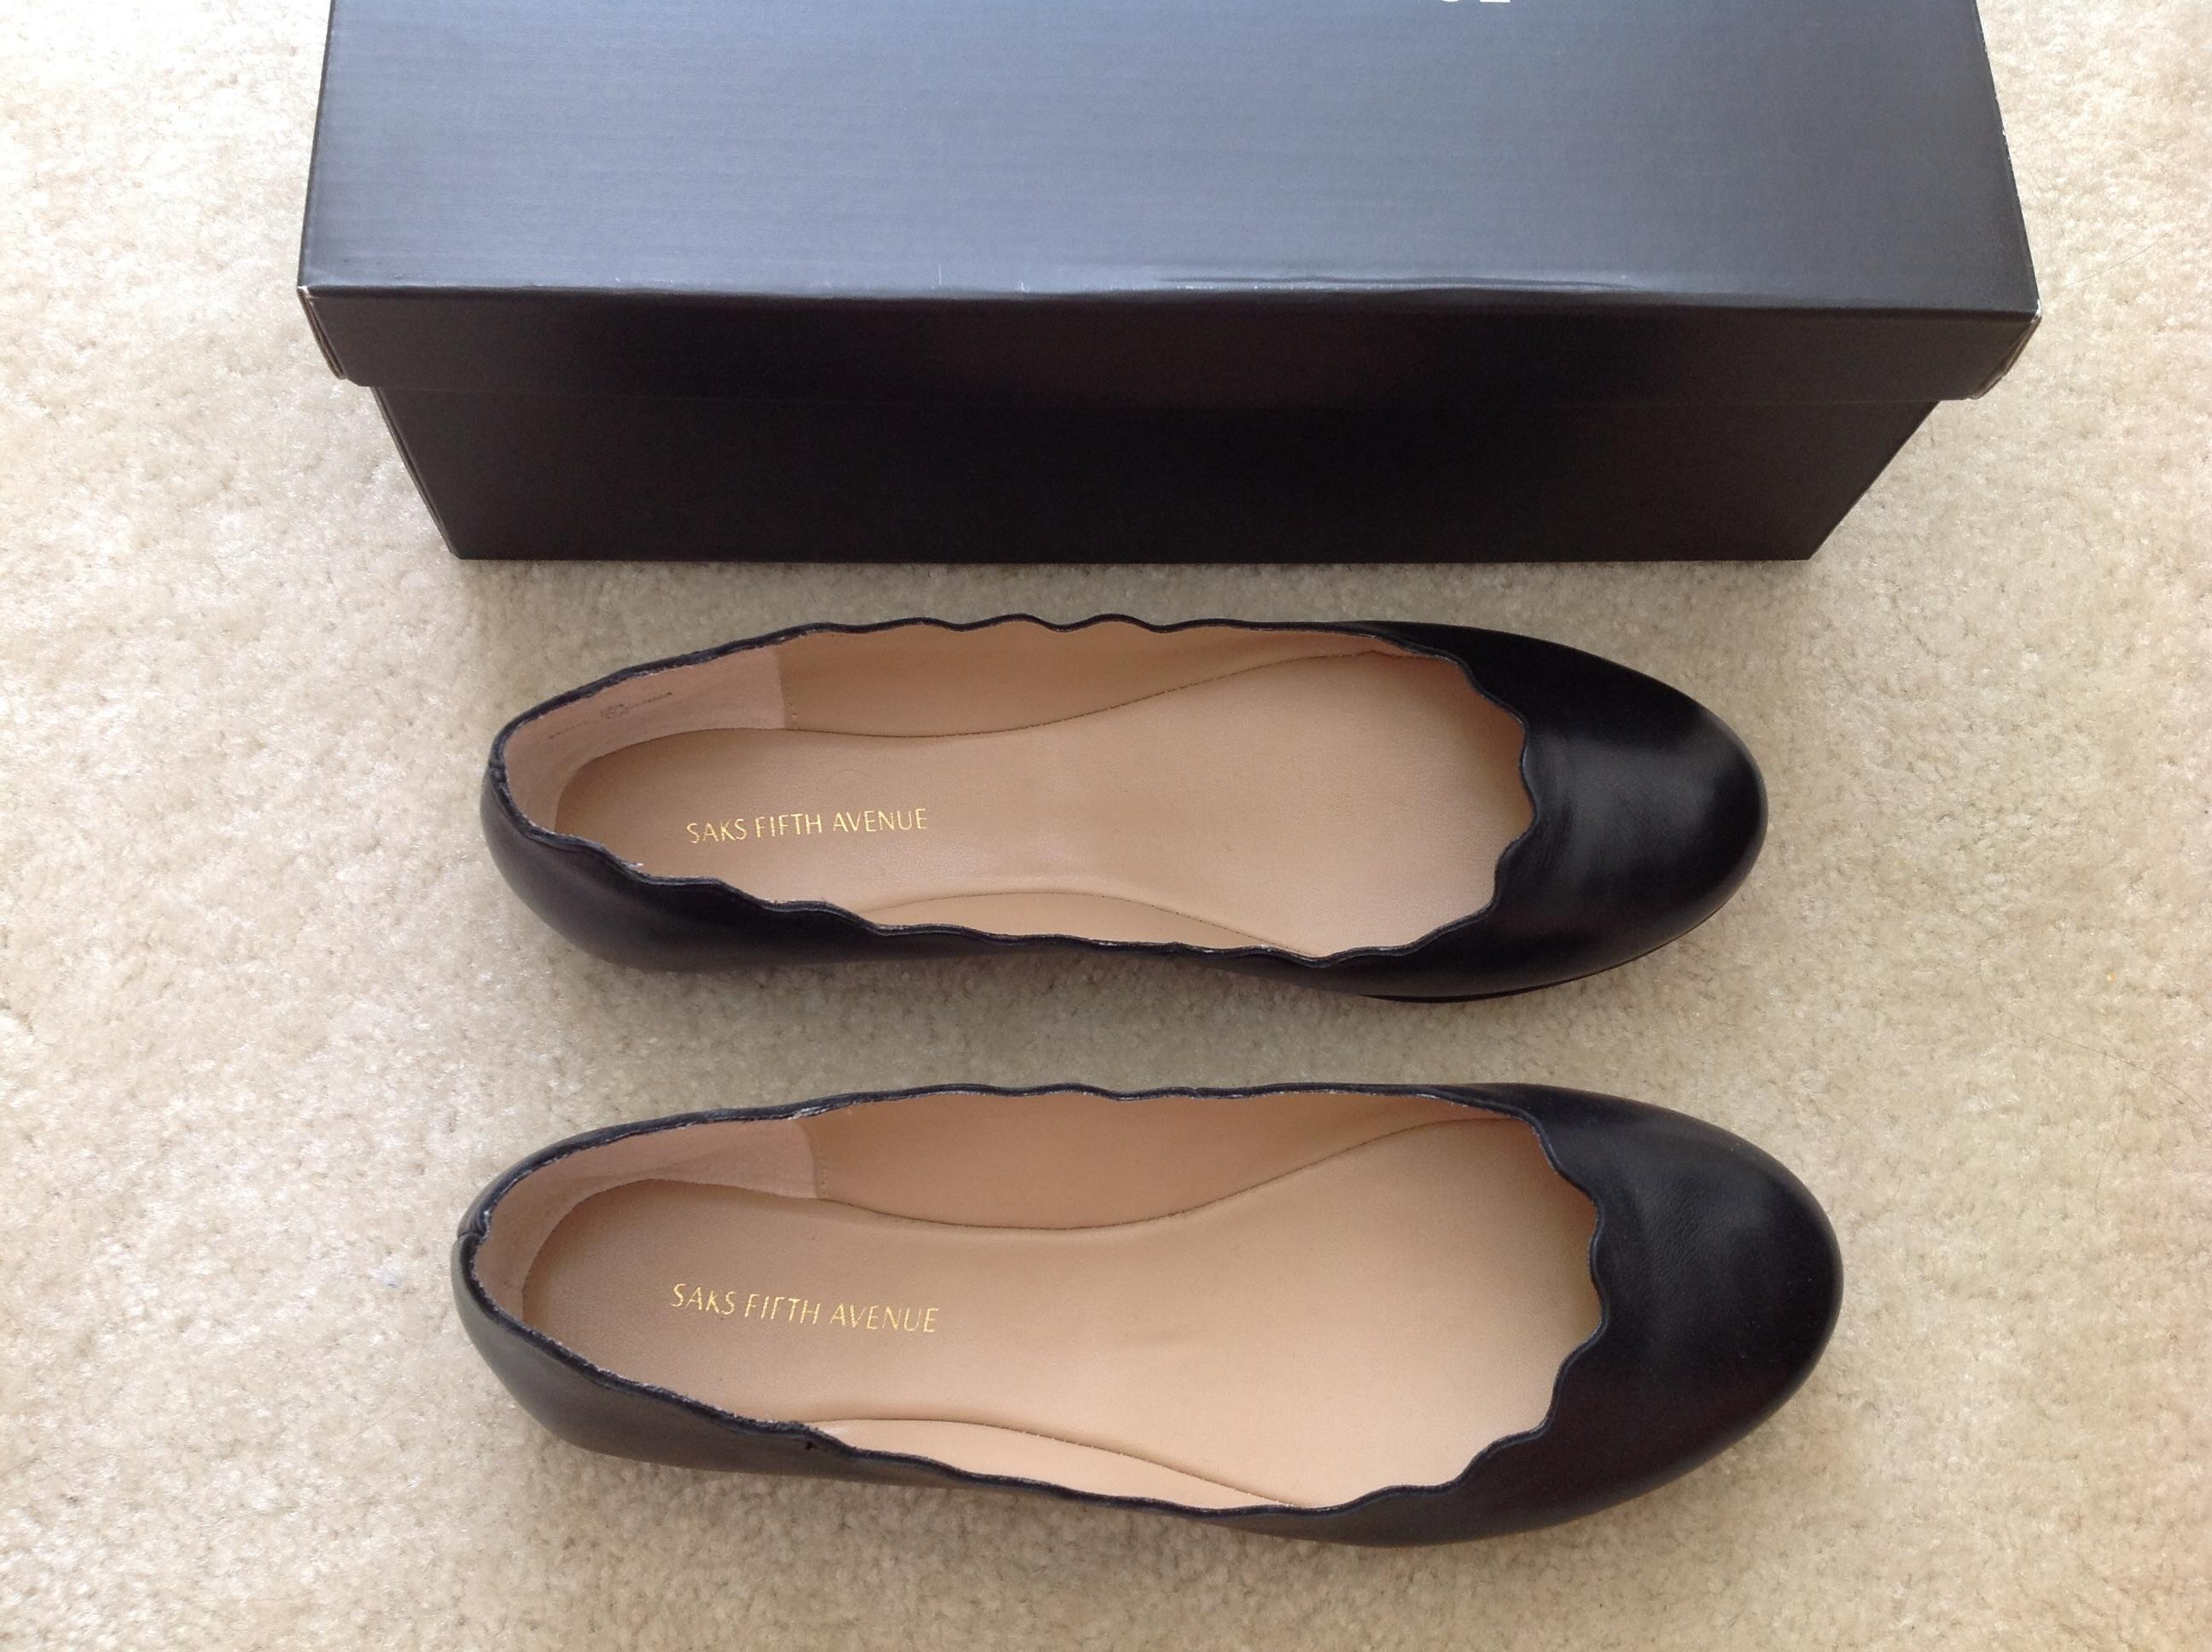 fake chloe - saks-fifth-avenue-chloe-scallop-black-flats-17241940-3-0.jpg